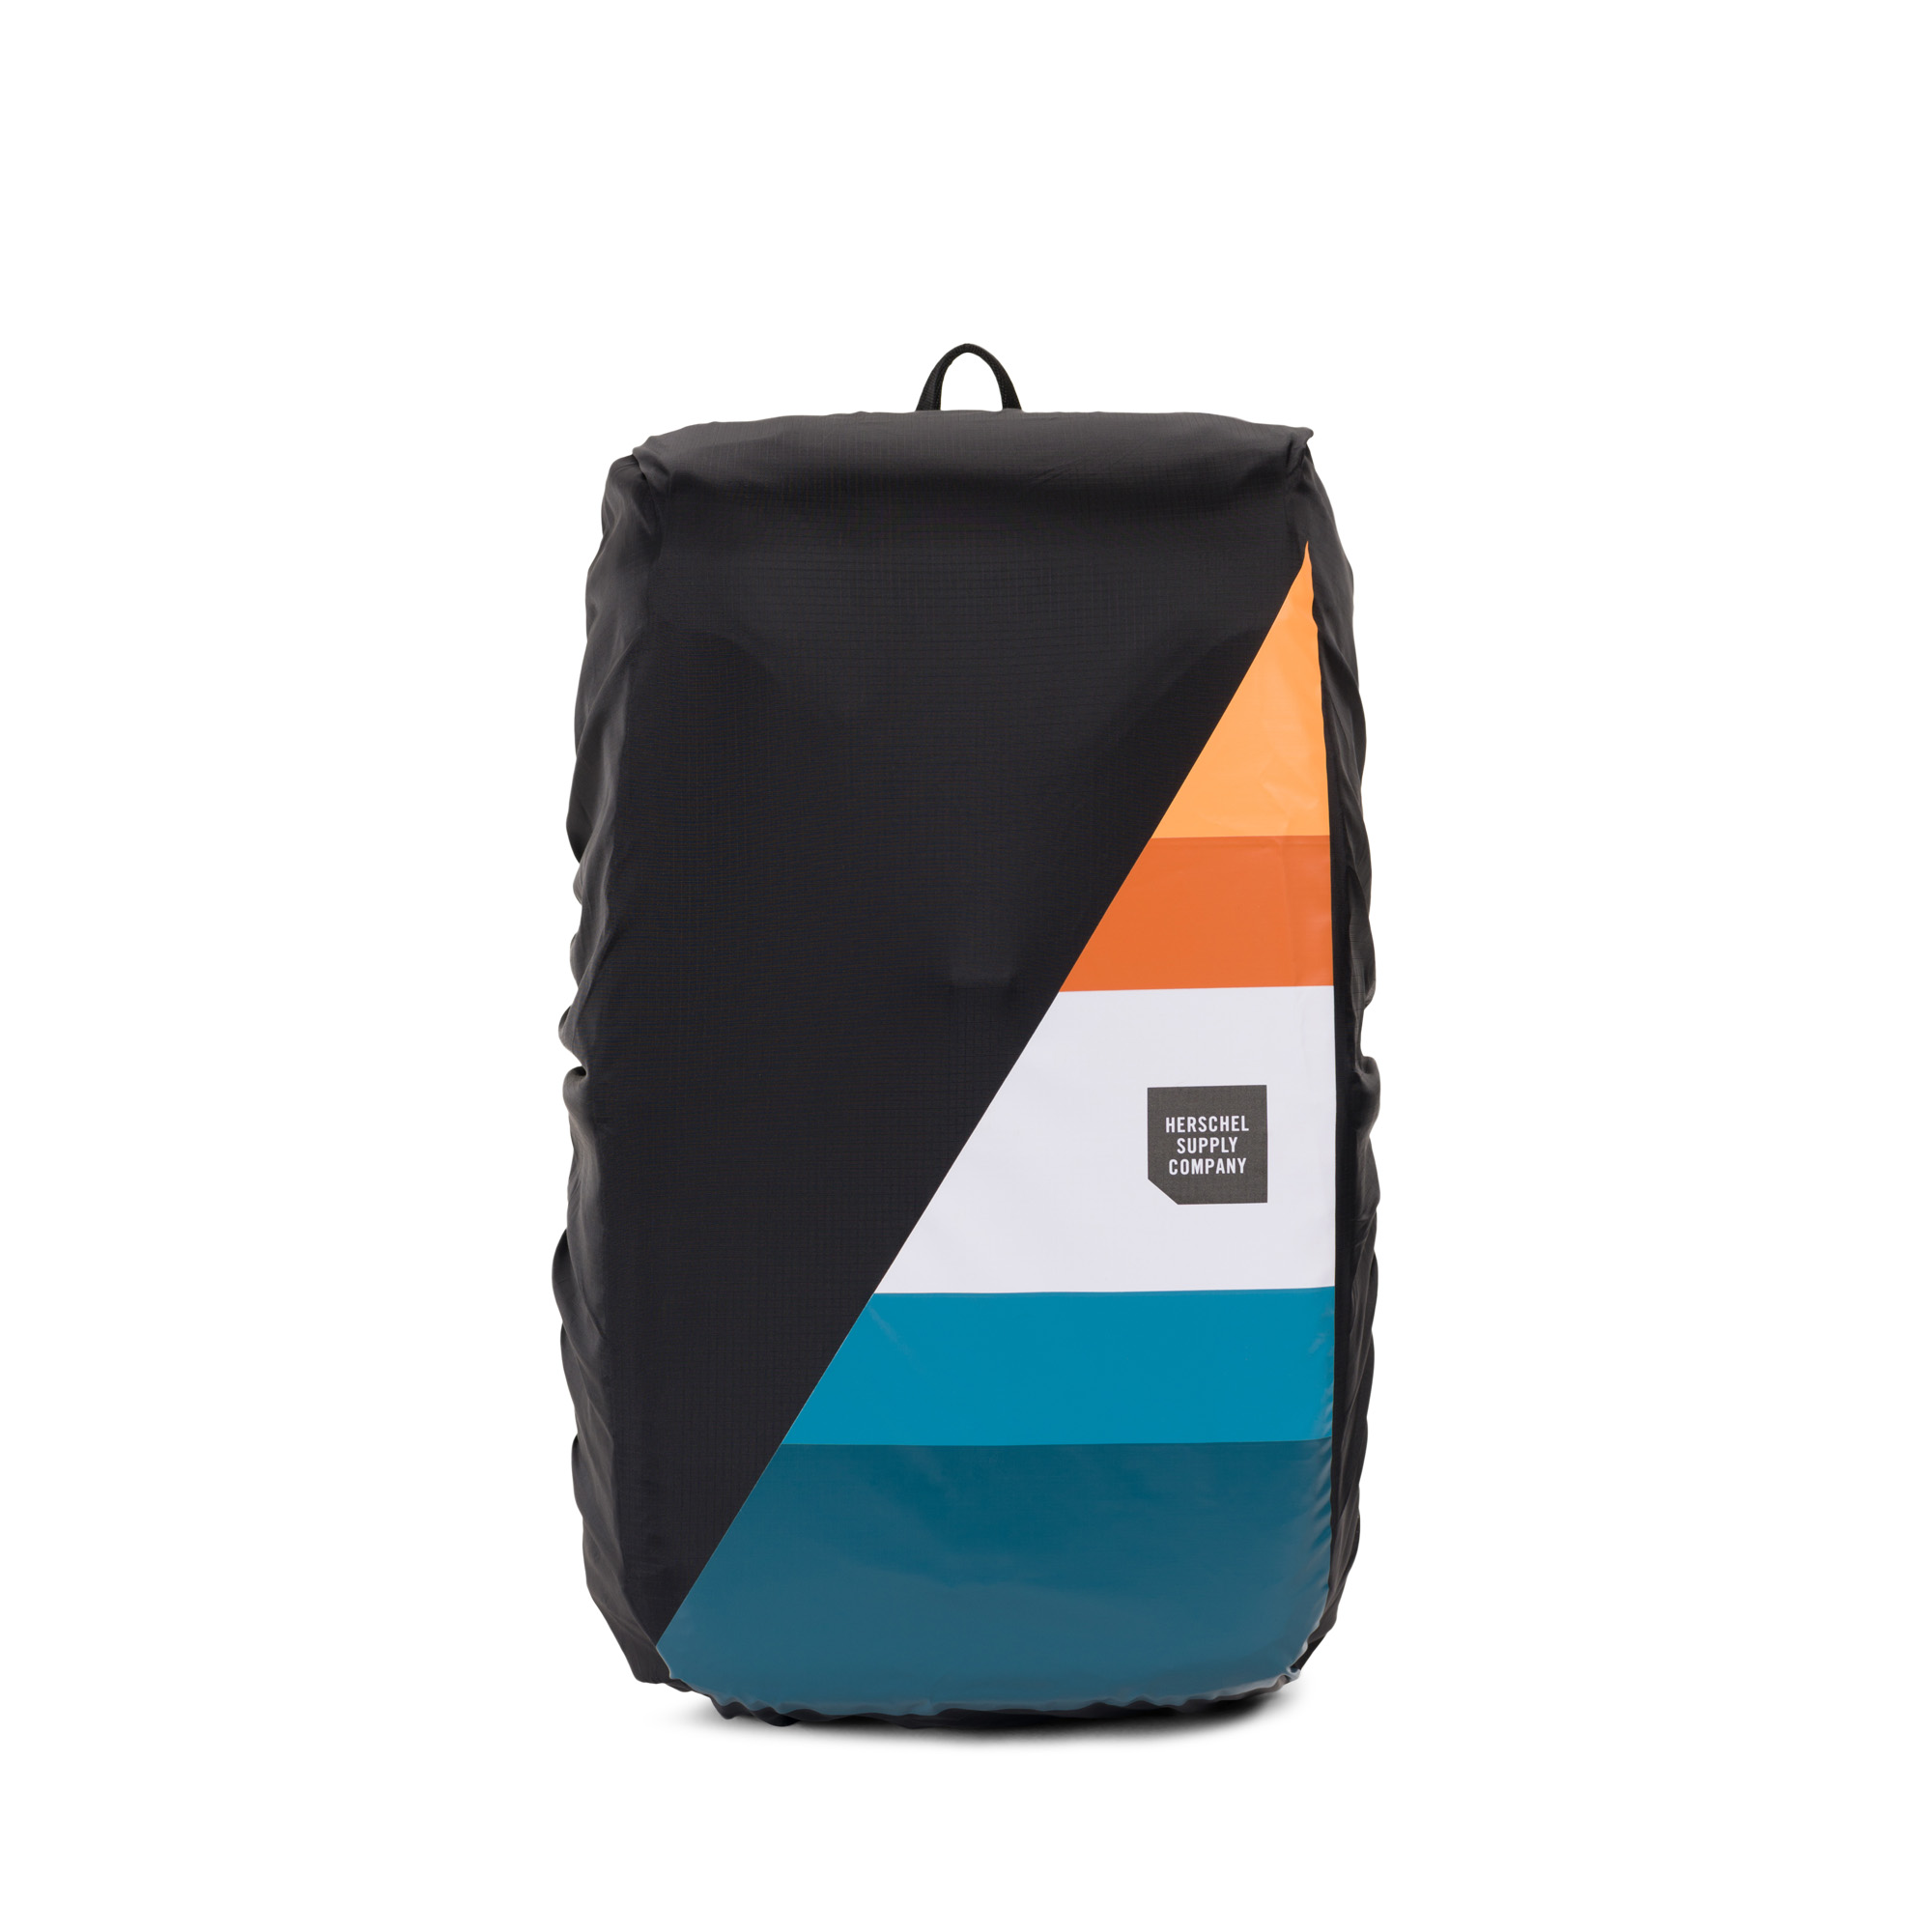 8e6e510fa4e Barlow Backpack Medium